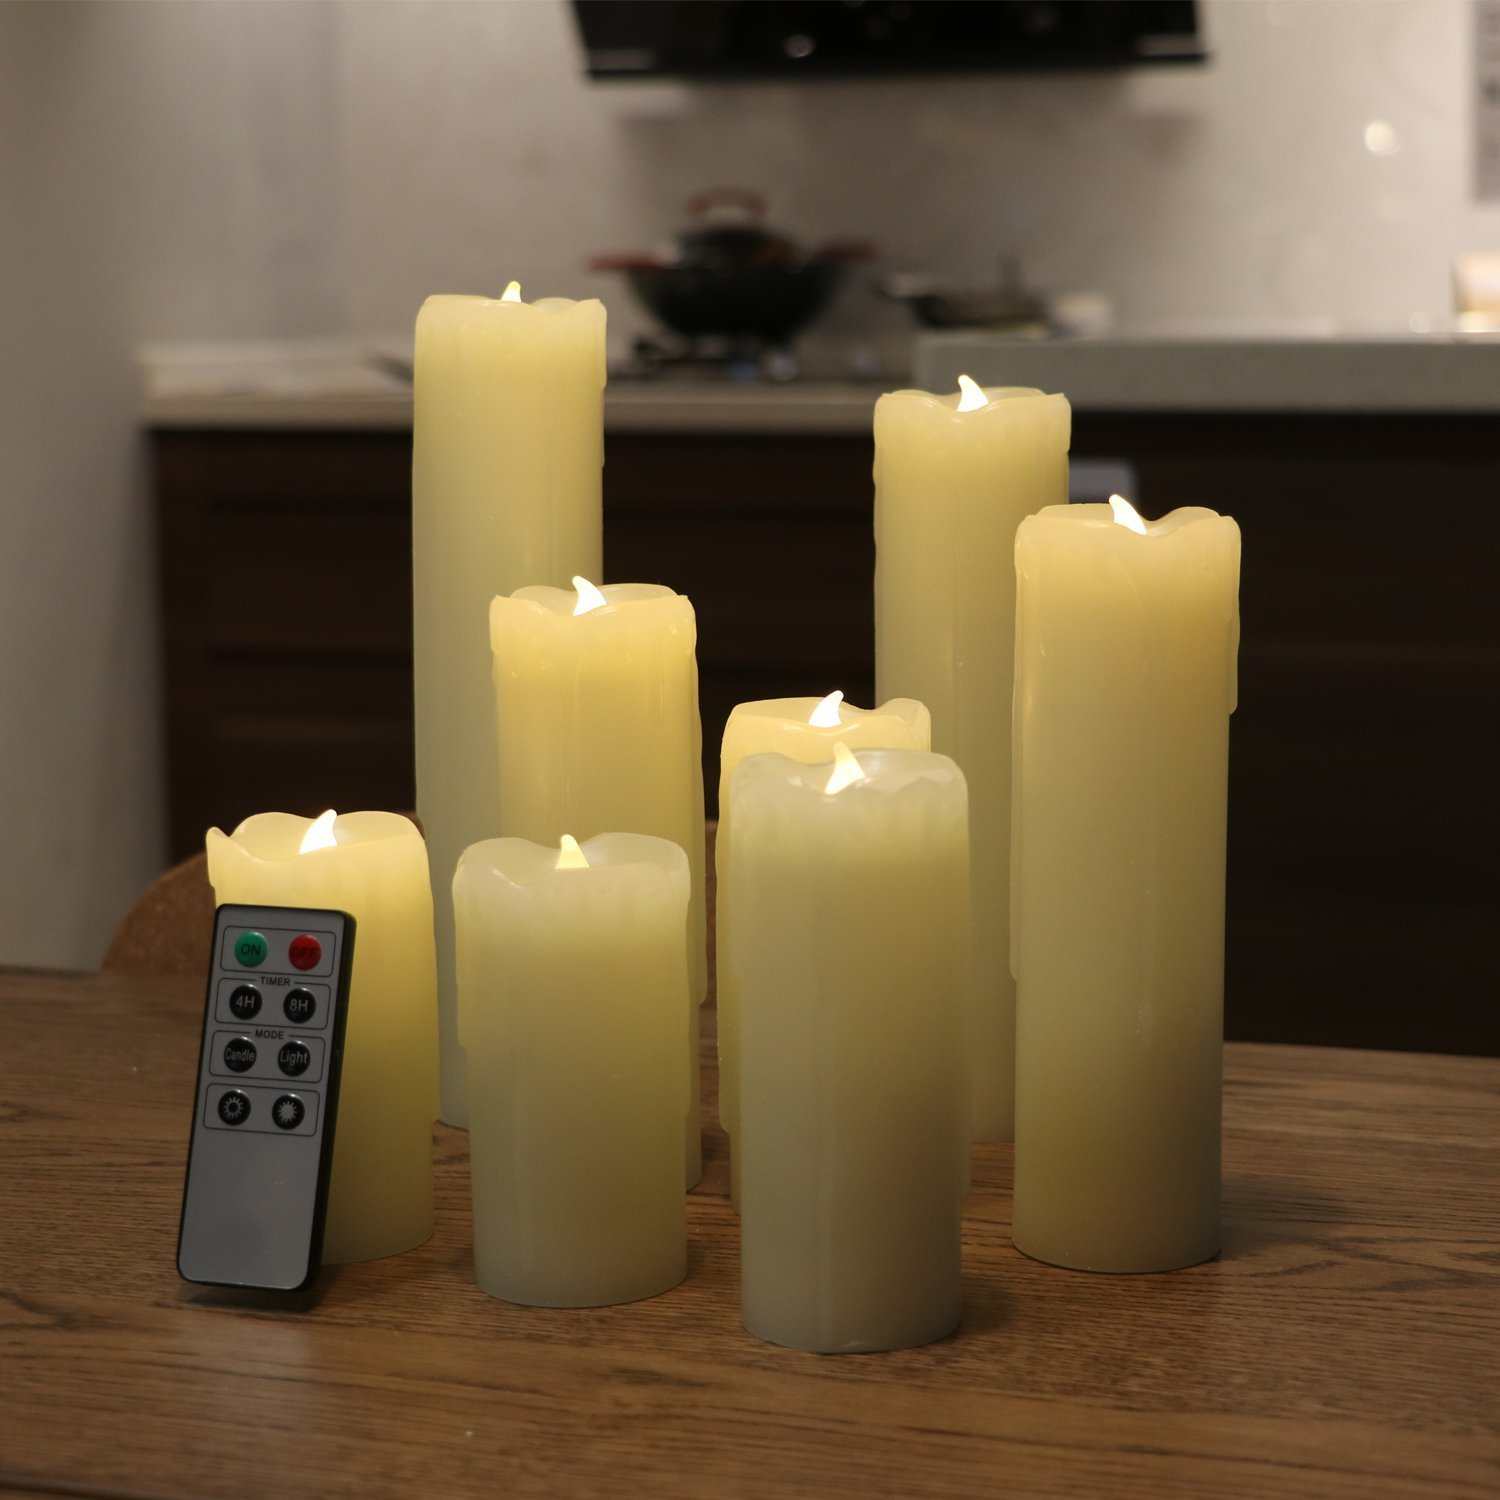 Set of 8 Flameless LED Candles with Timer, Battery Operated Candles with Remote Control, Ivory Wax Drip Finish, H4''/5''/6''/7''/8'', Long Lasting Batteies Included by Rhytsing (Image #2)